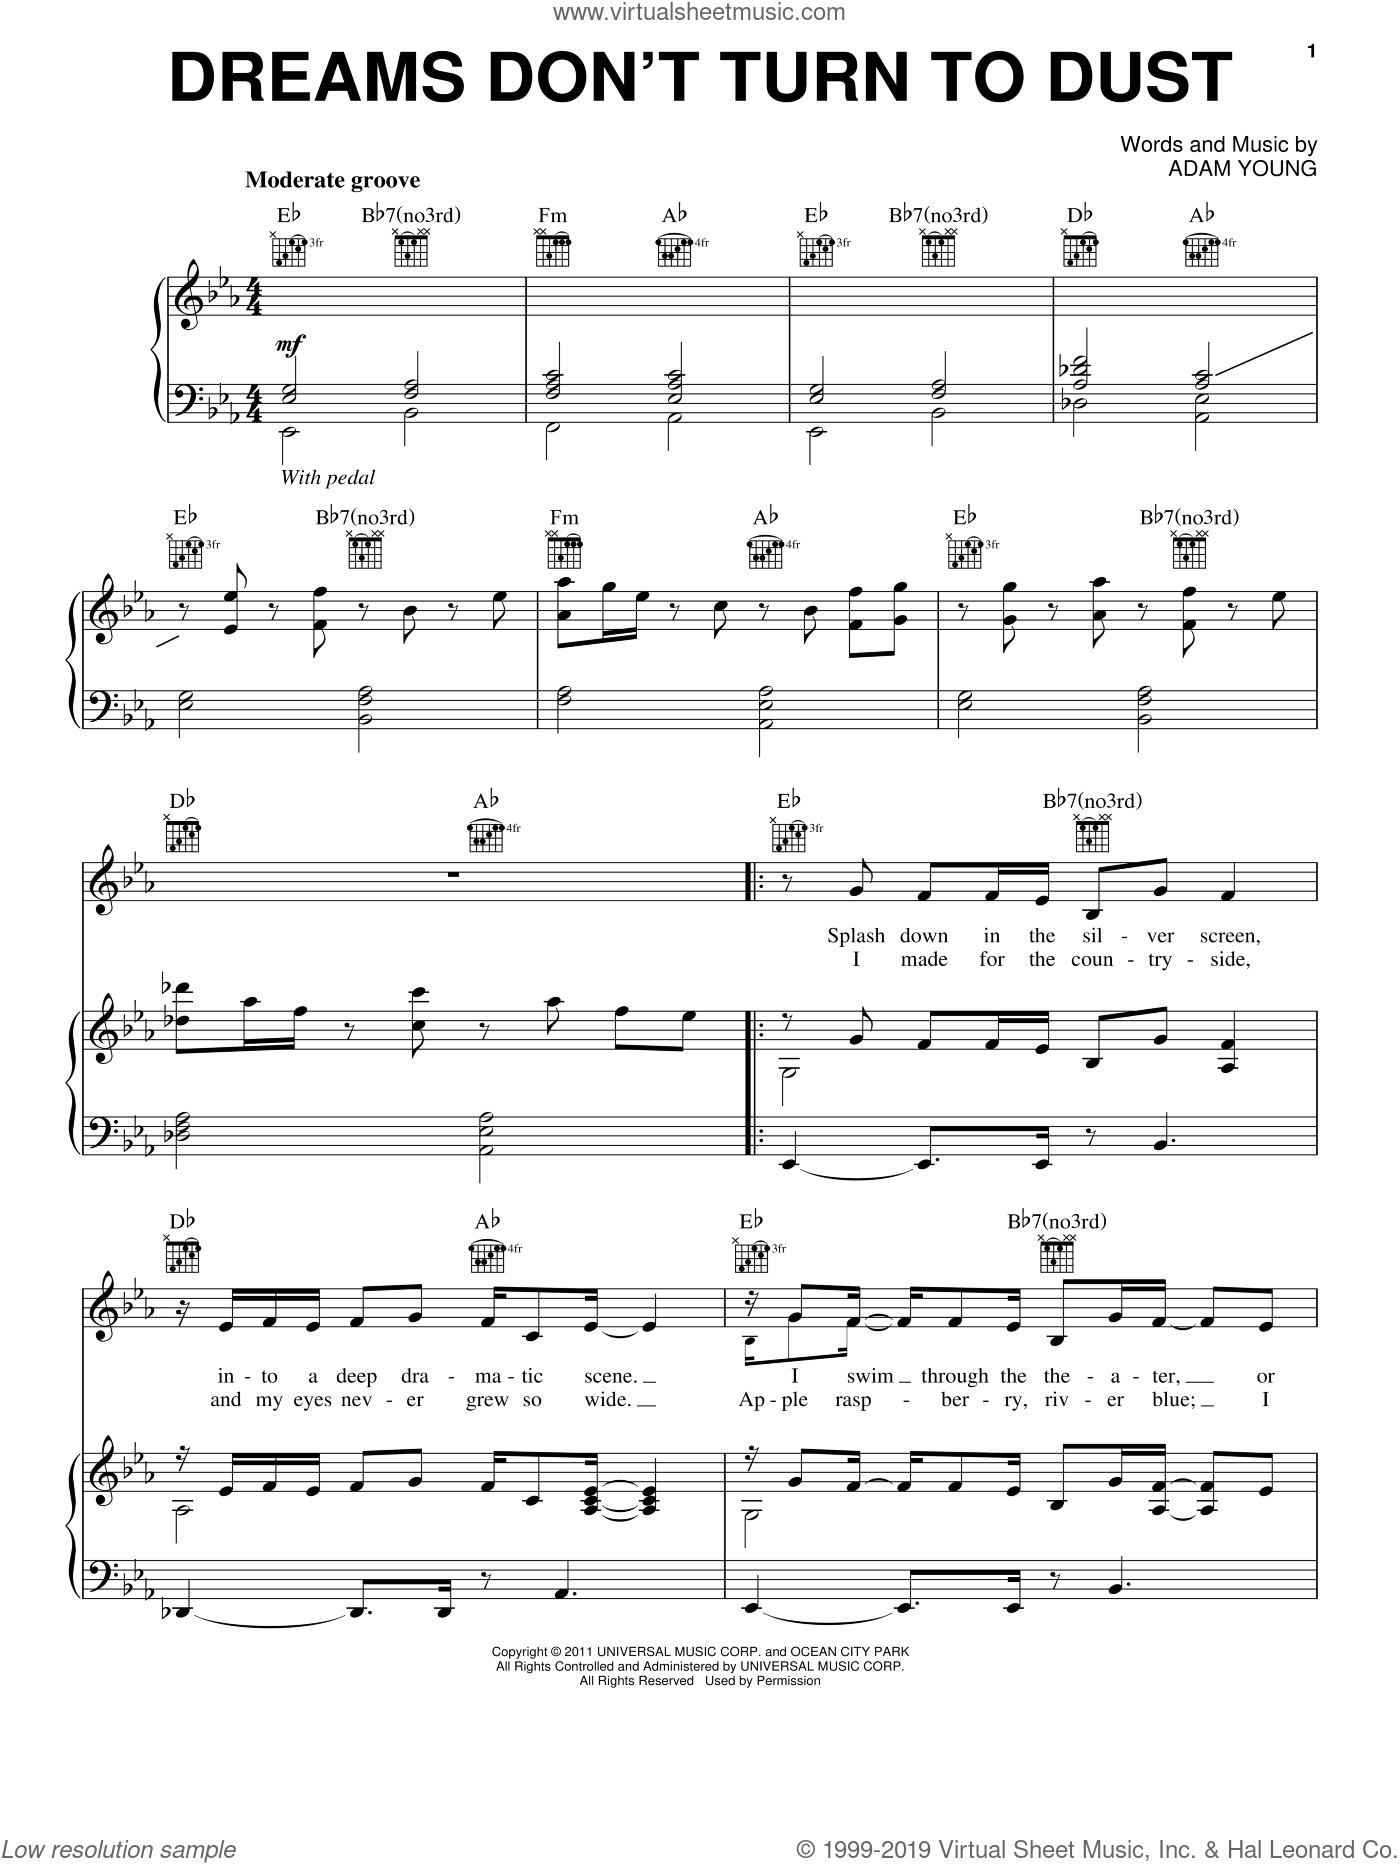 Dreams Don't Turn To Dust sheet music for voice, piano or guitar by Adam Young